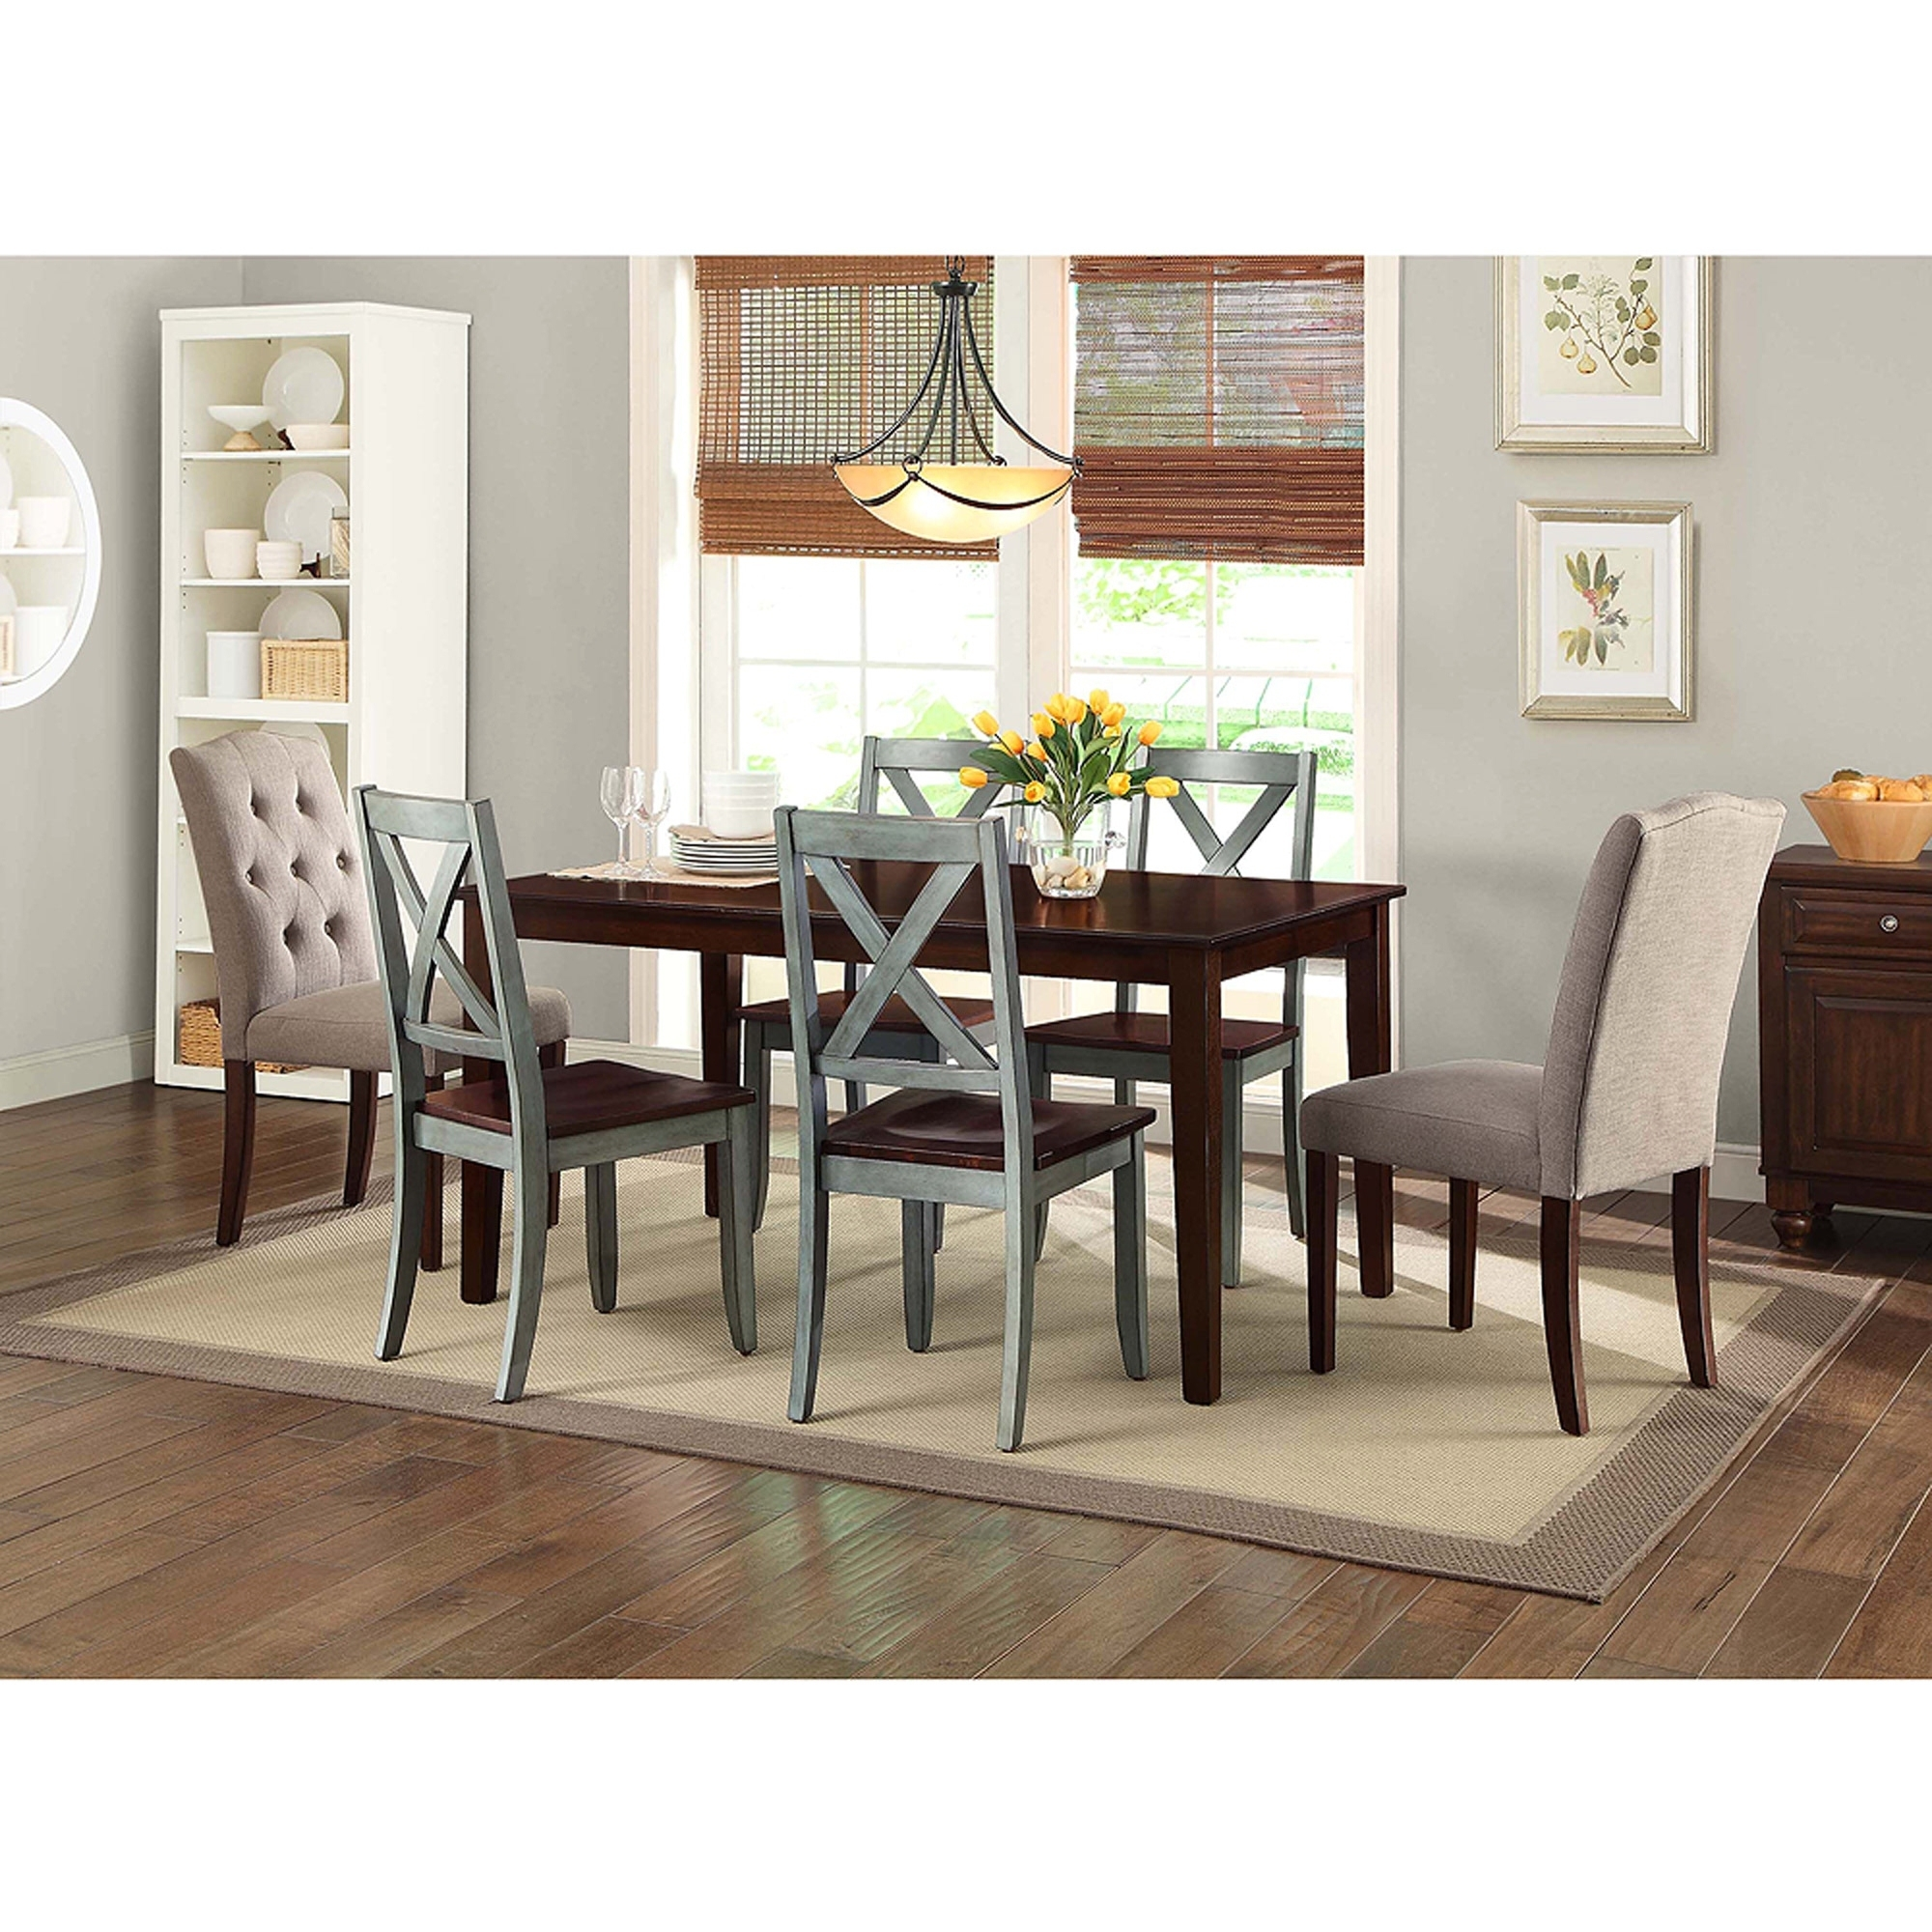 Breathtaking 7 Piece Dining Set With Bench Tips | Bank Of Ideas Within Current Partridge 7 Piece Dining Sets (View 10 of 20)